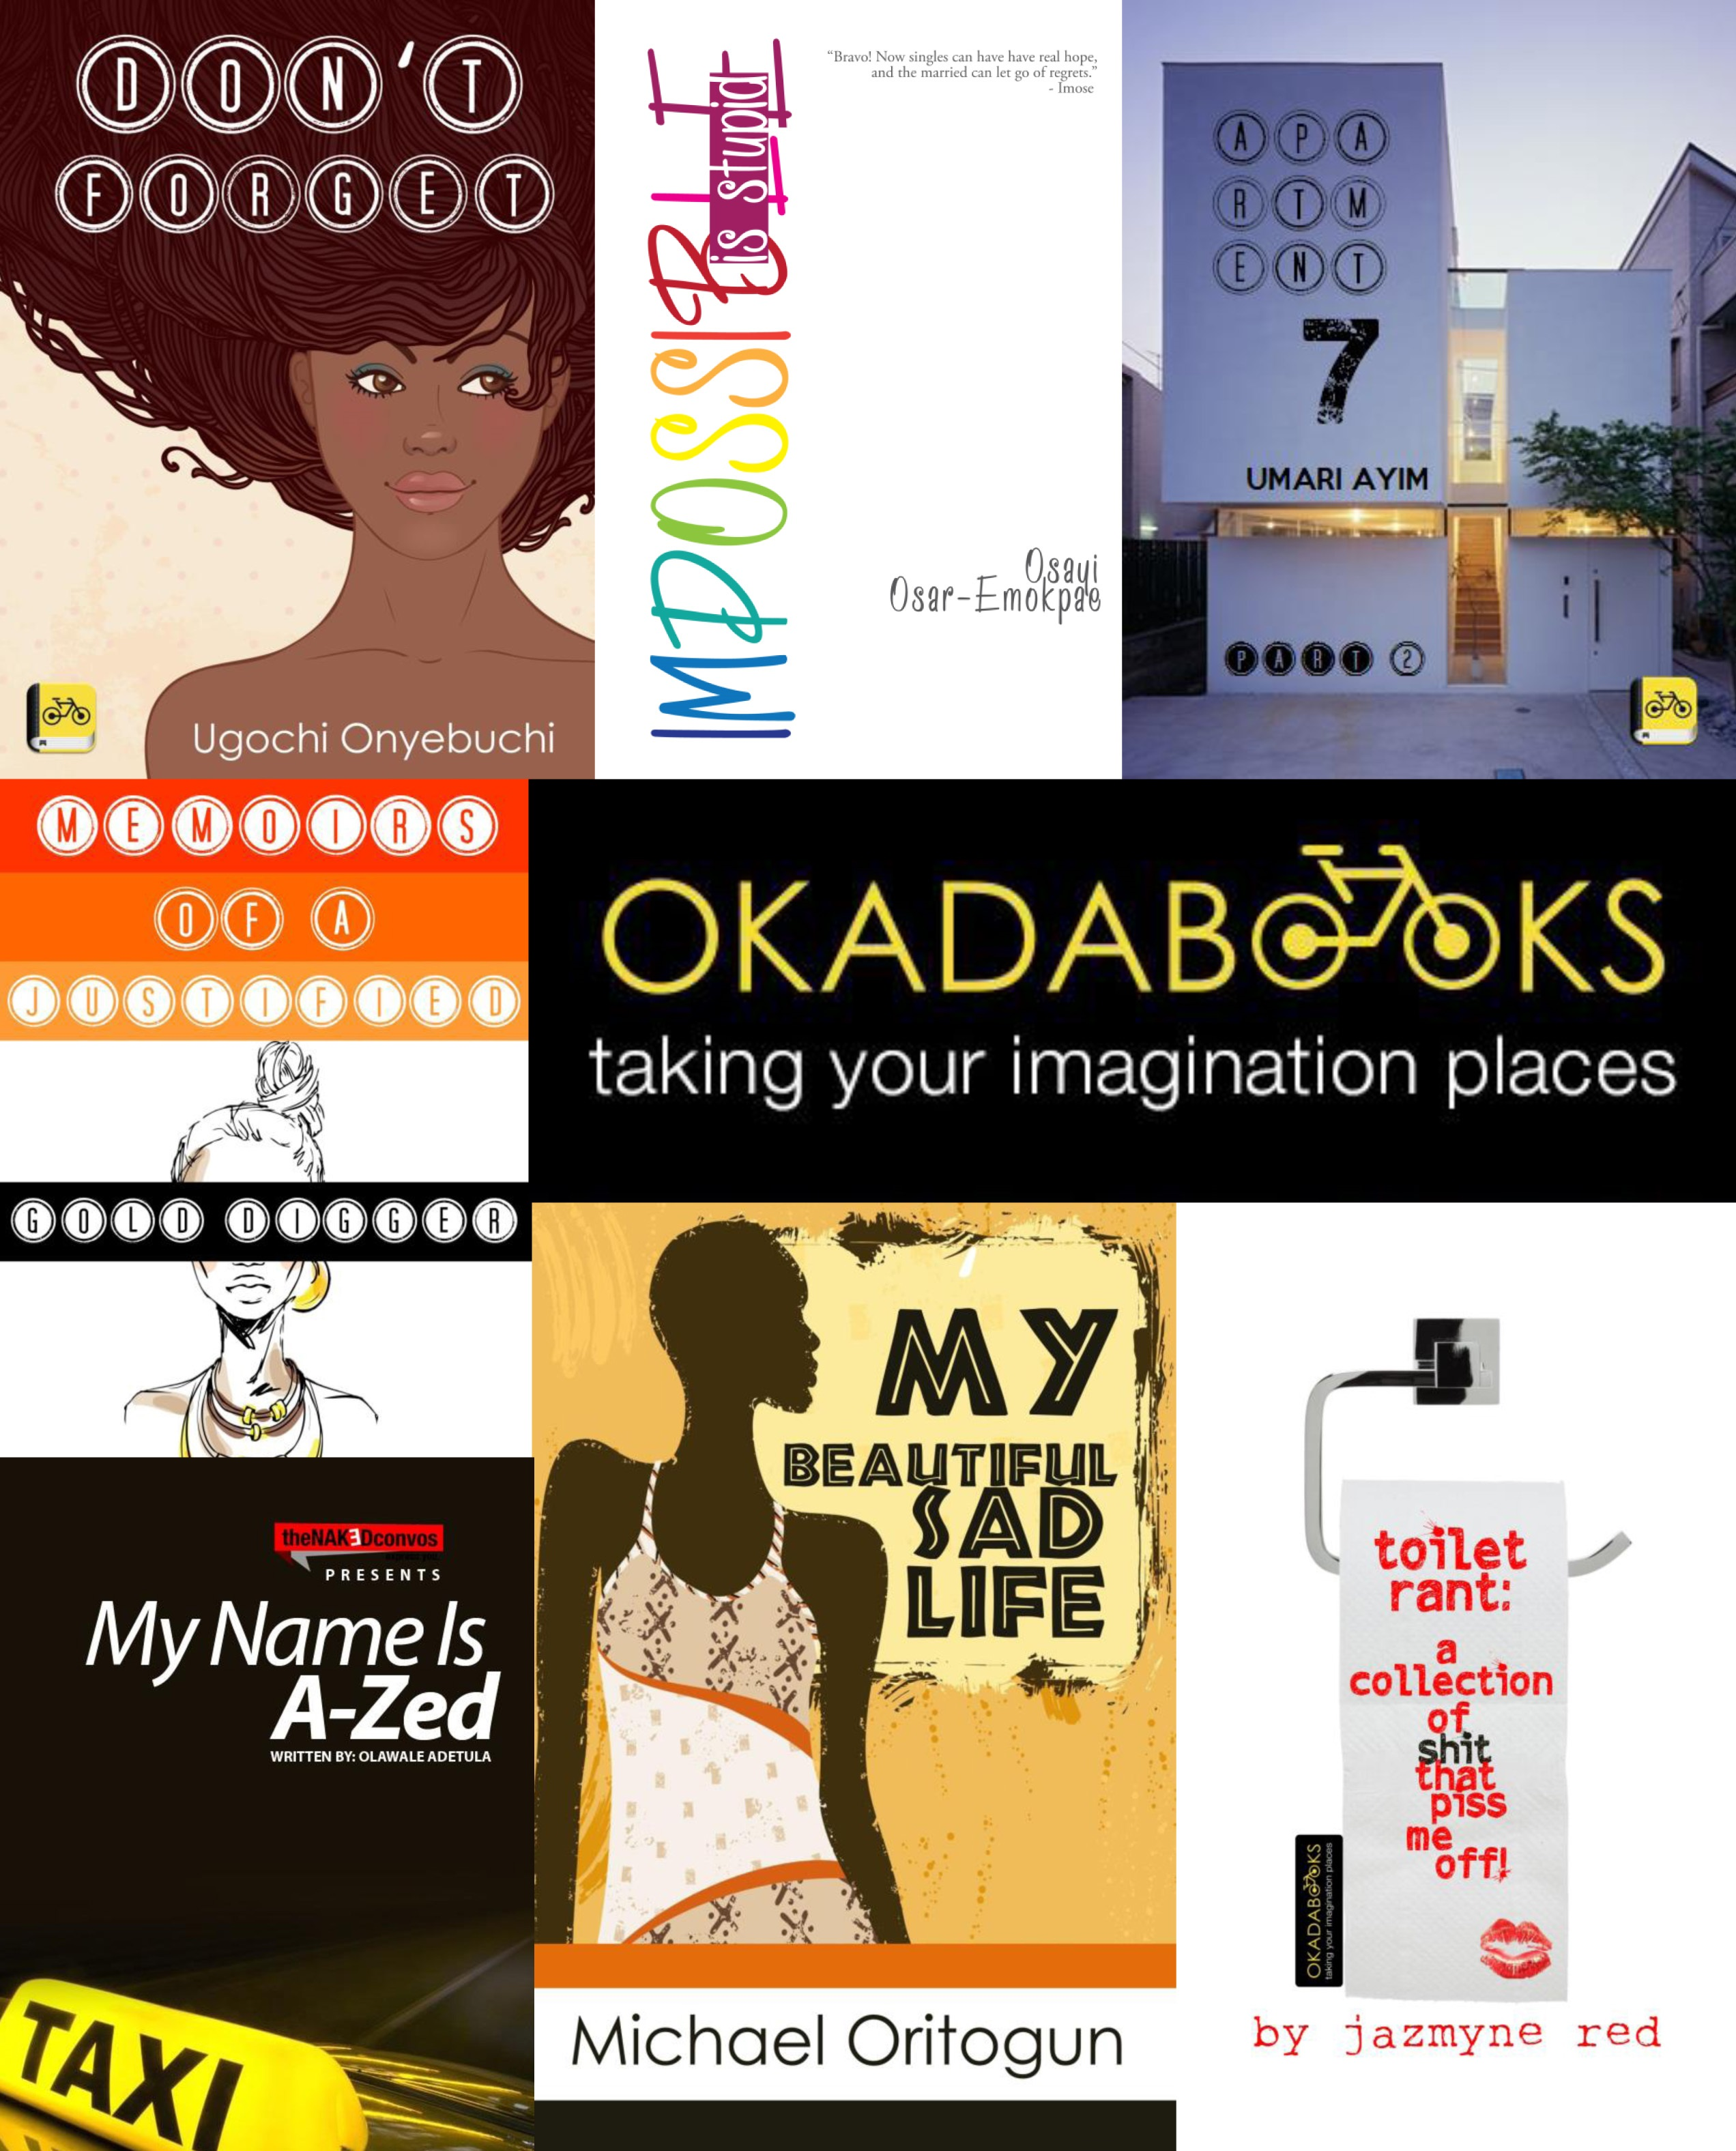 Phone Free Books For Android Phones nigerian free ebooks on android phones nigeria their check out the app at httpsplay google comstoreappsdetailsidcom okadabooks and let us know what you think about it a